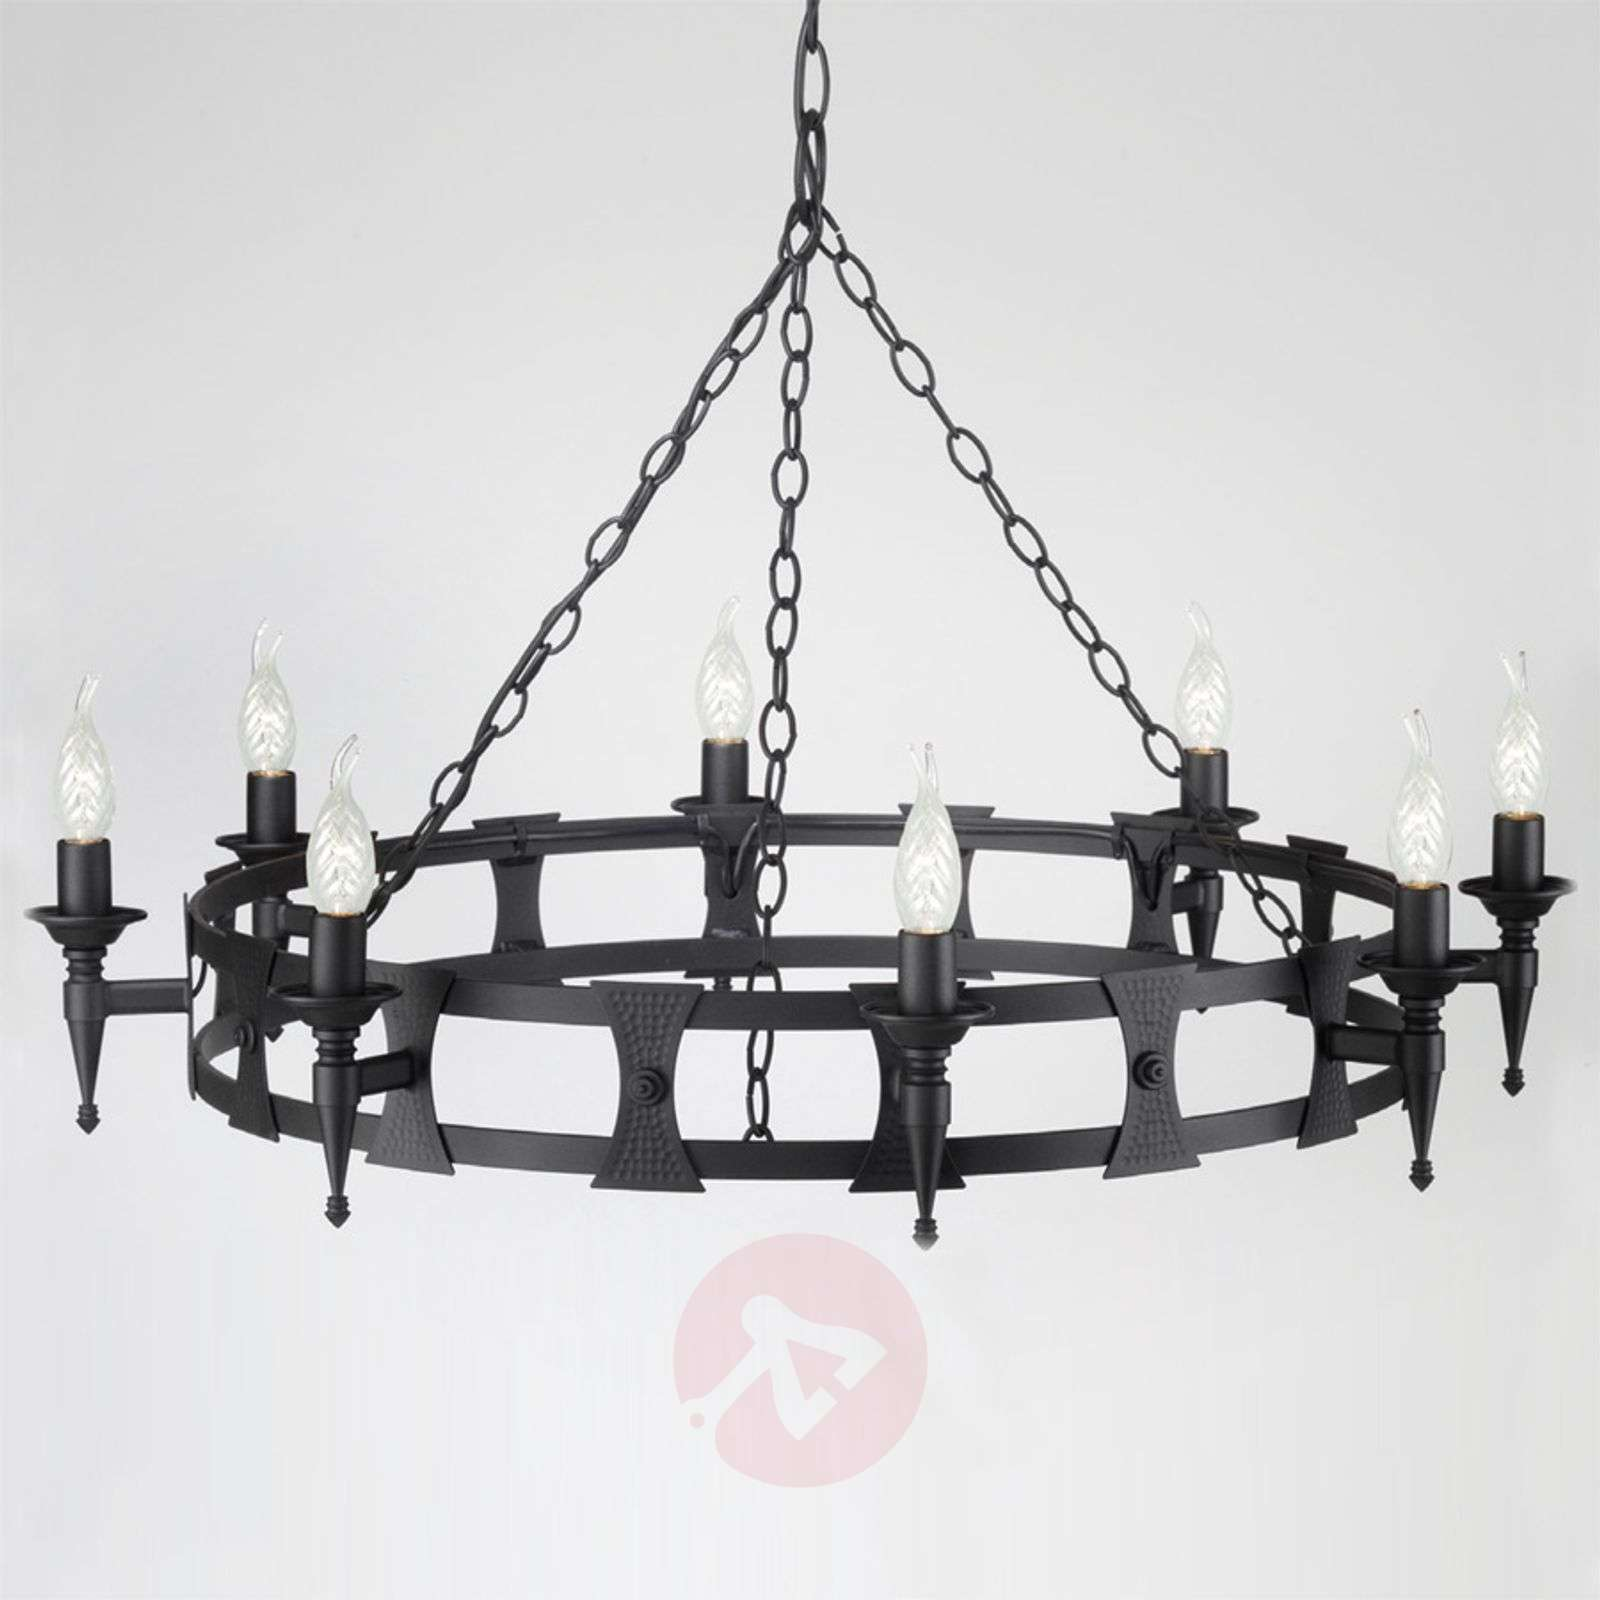 Saxon Hanging Light Three Bulbs Medieval Style-3048049X-01